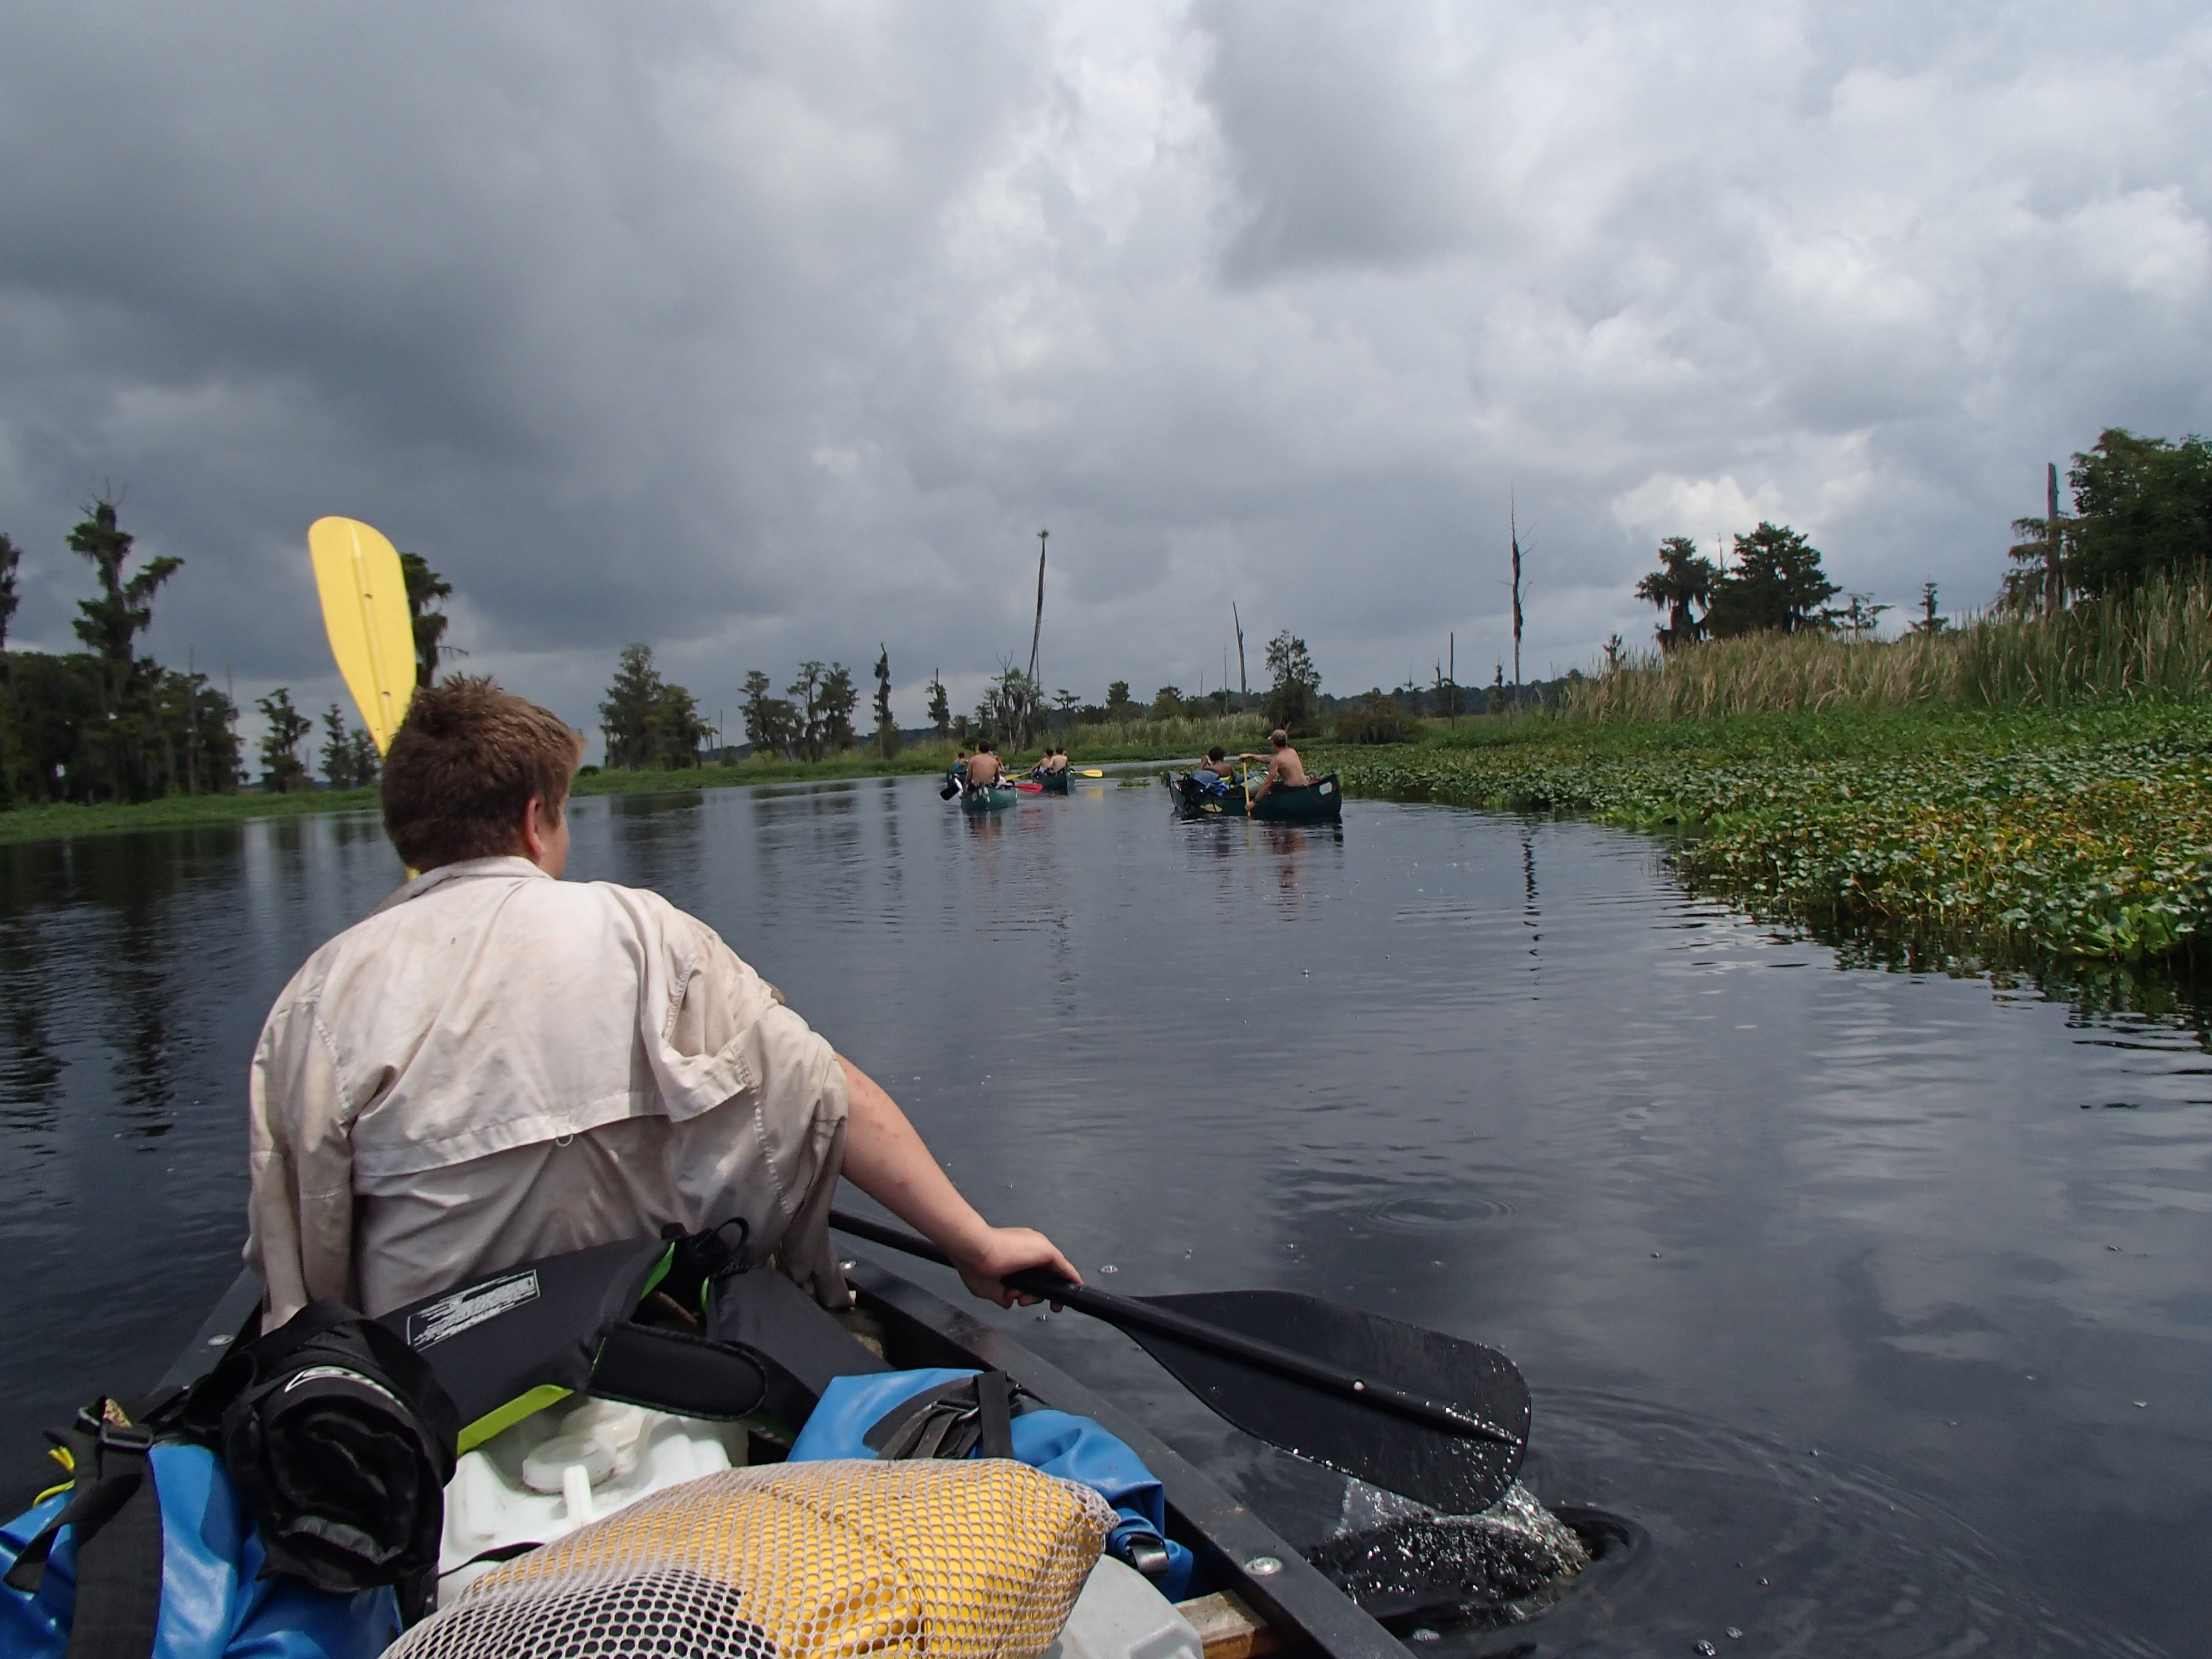 Canoeing on rivers in Florida